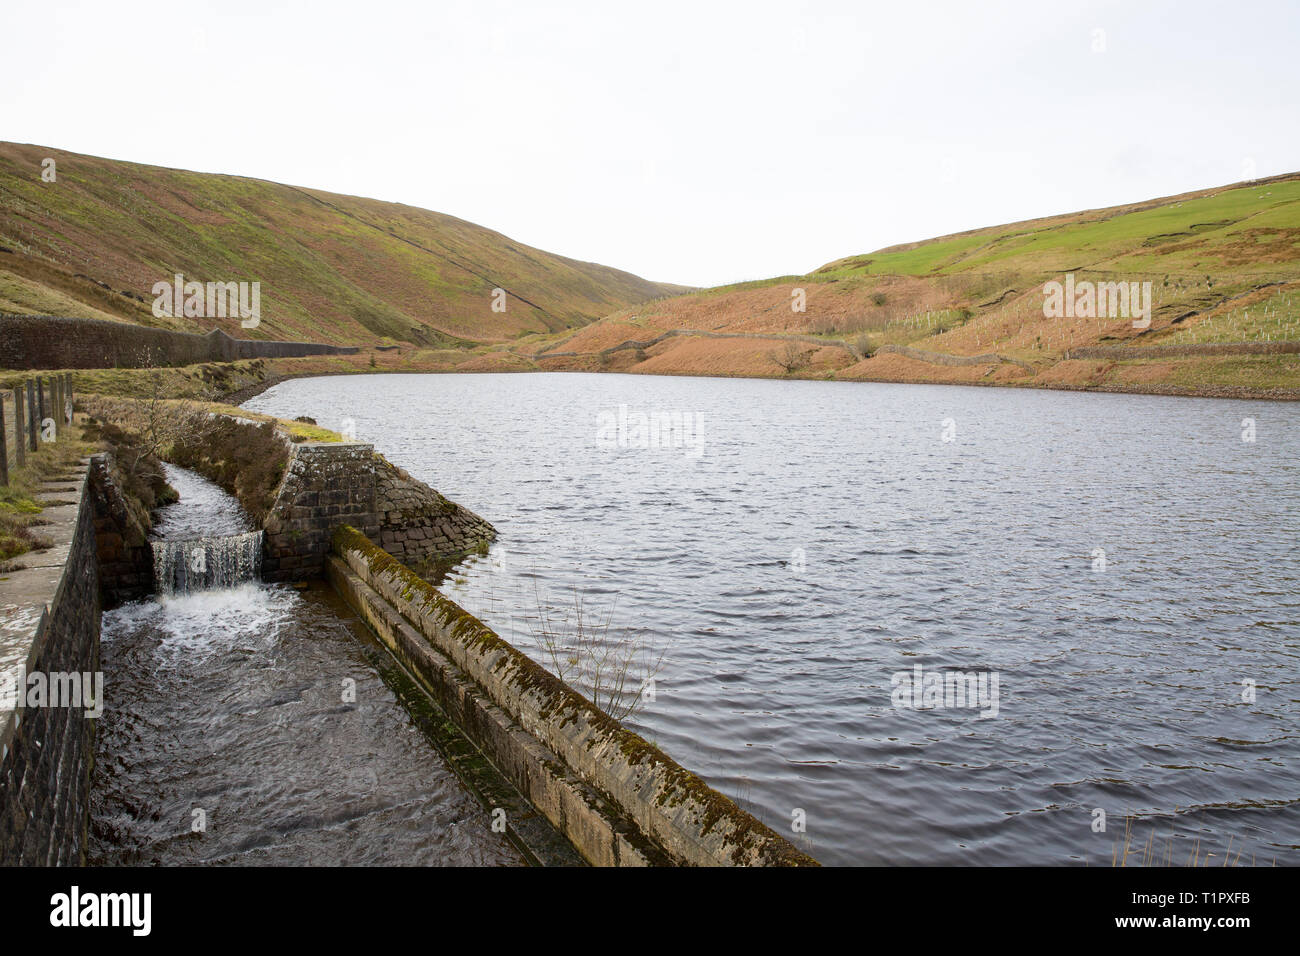 A view of Upper Ogden reservoir above the village of Barley, in the Borough of Pendle Lancashire. The area is popular with walkers and known for the P - Stock Image